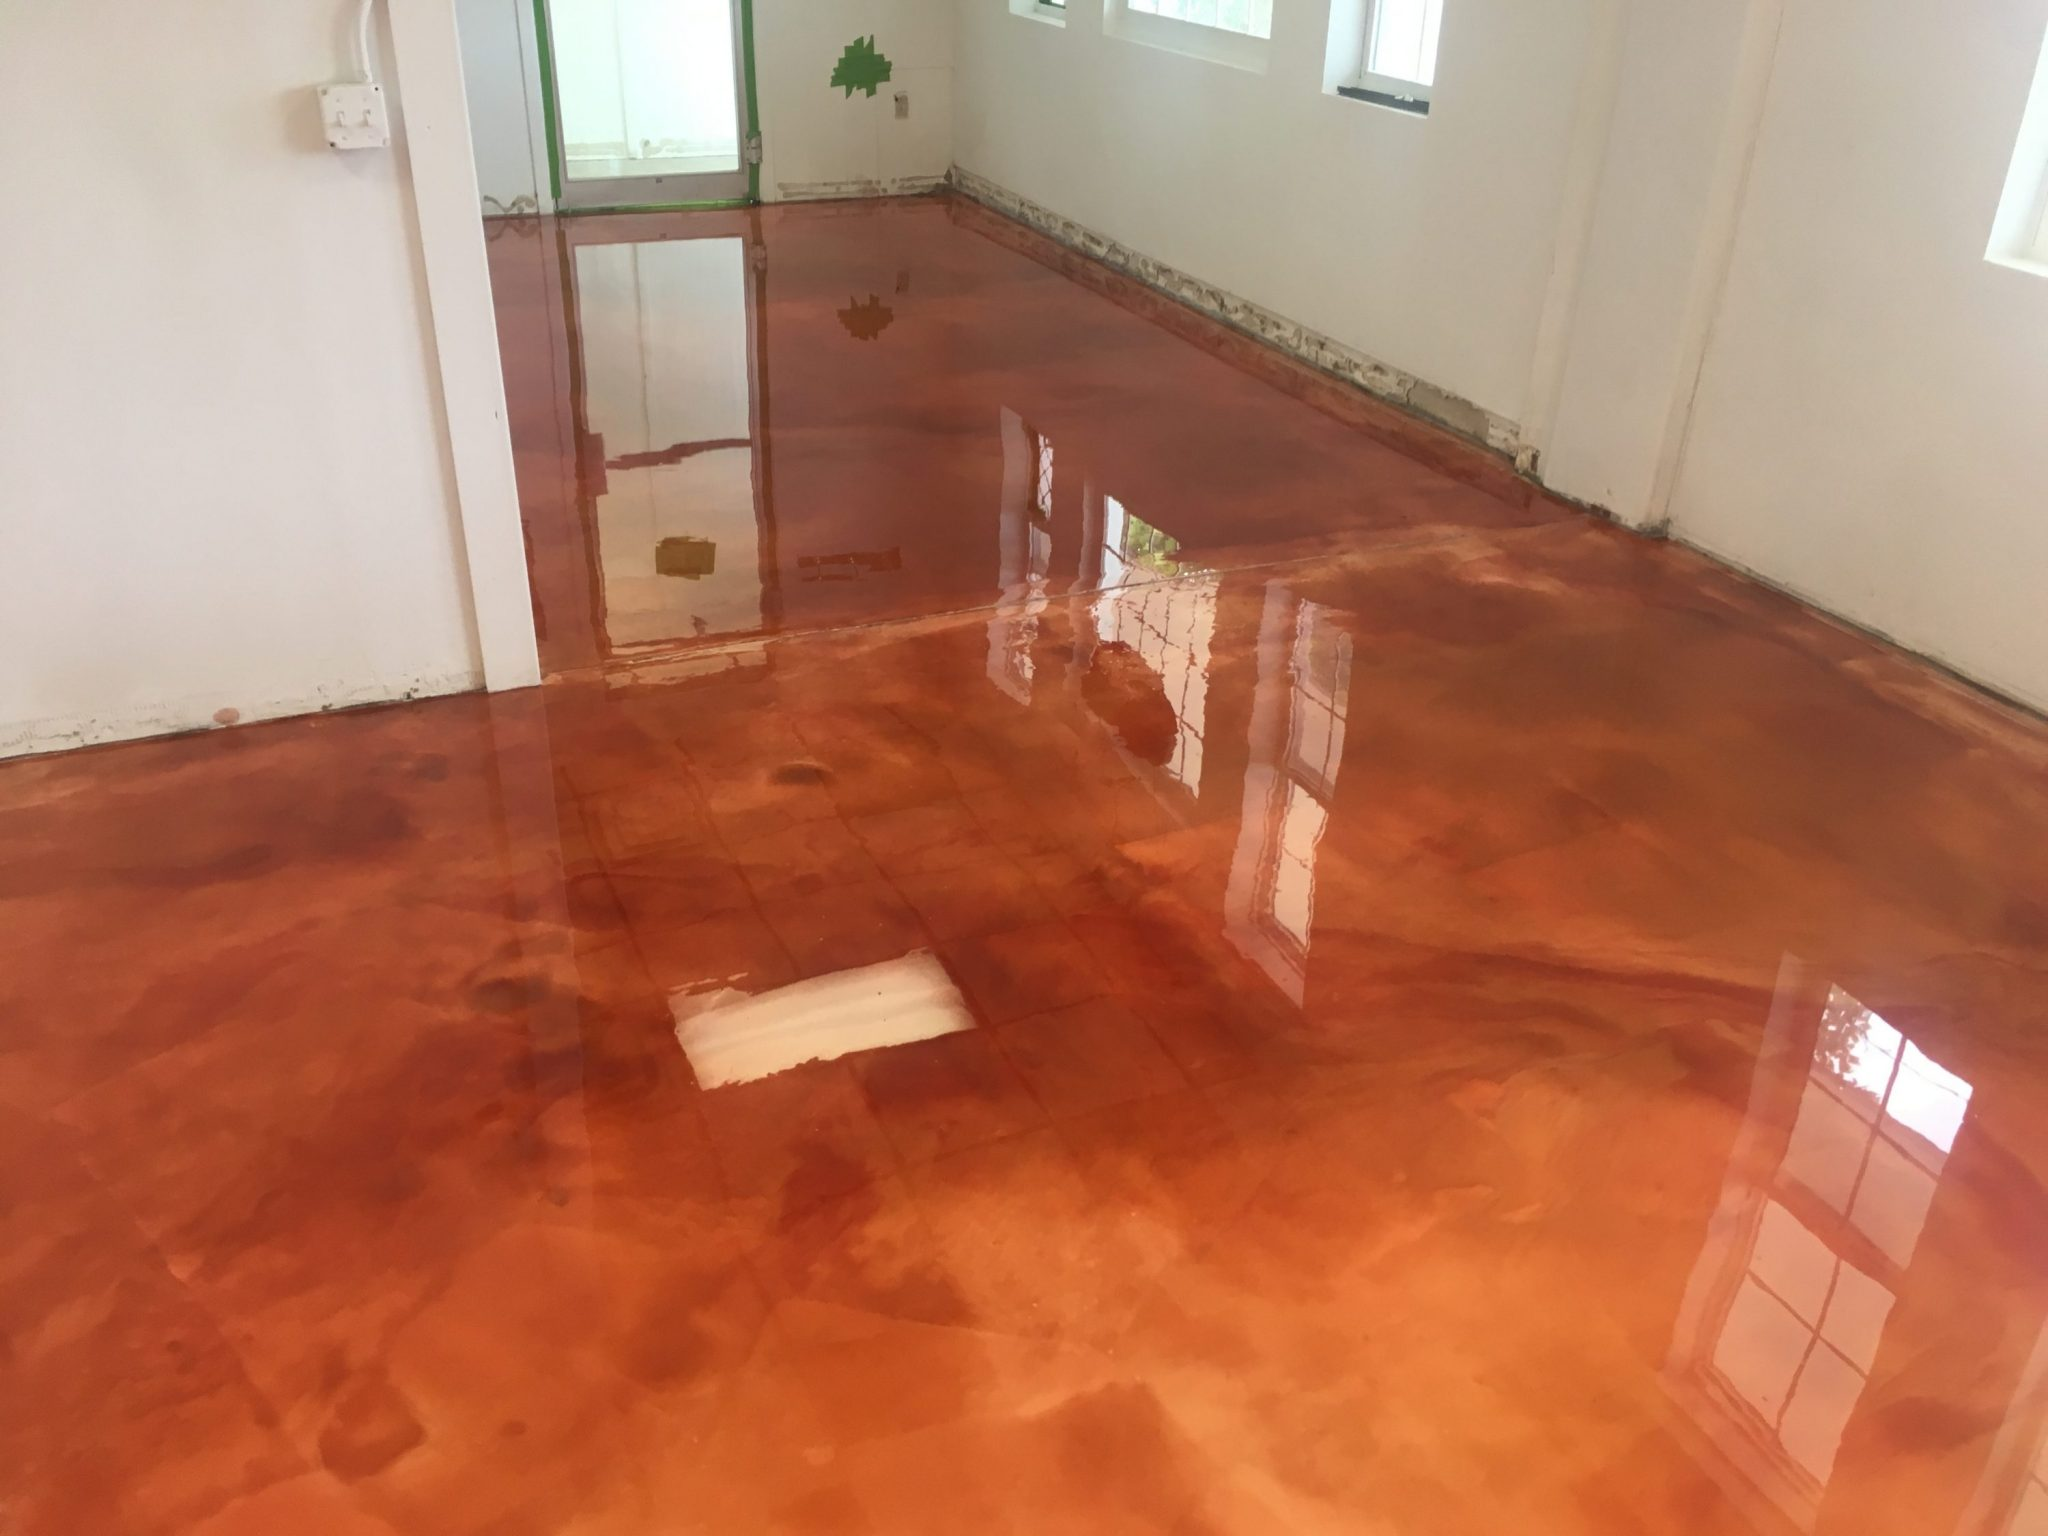 unlike kind to be continue one are decorativeconcretearticles concrete that popular of solid decor kopp floor july chip system produce why no a metallics metallic floors or epoxy vol